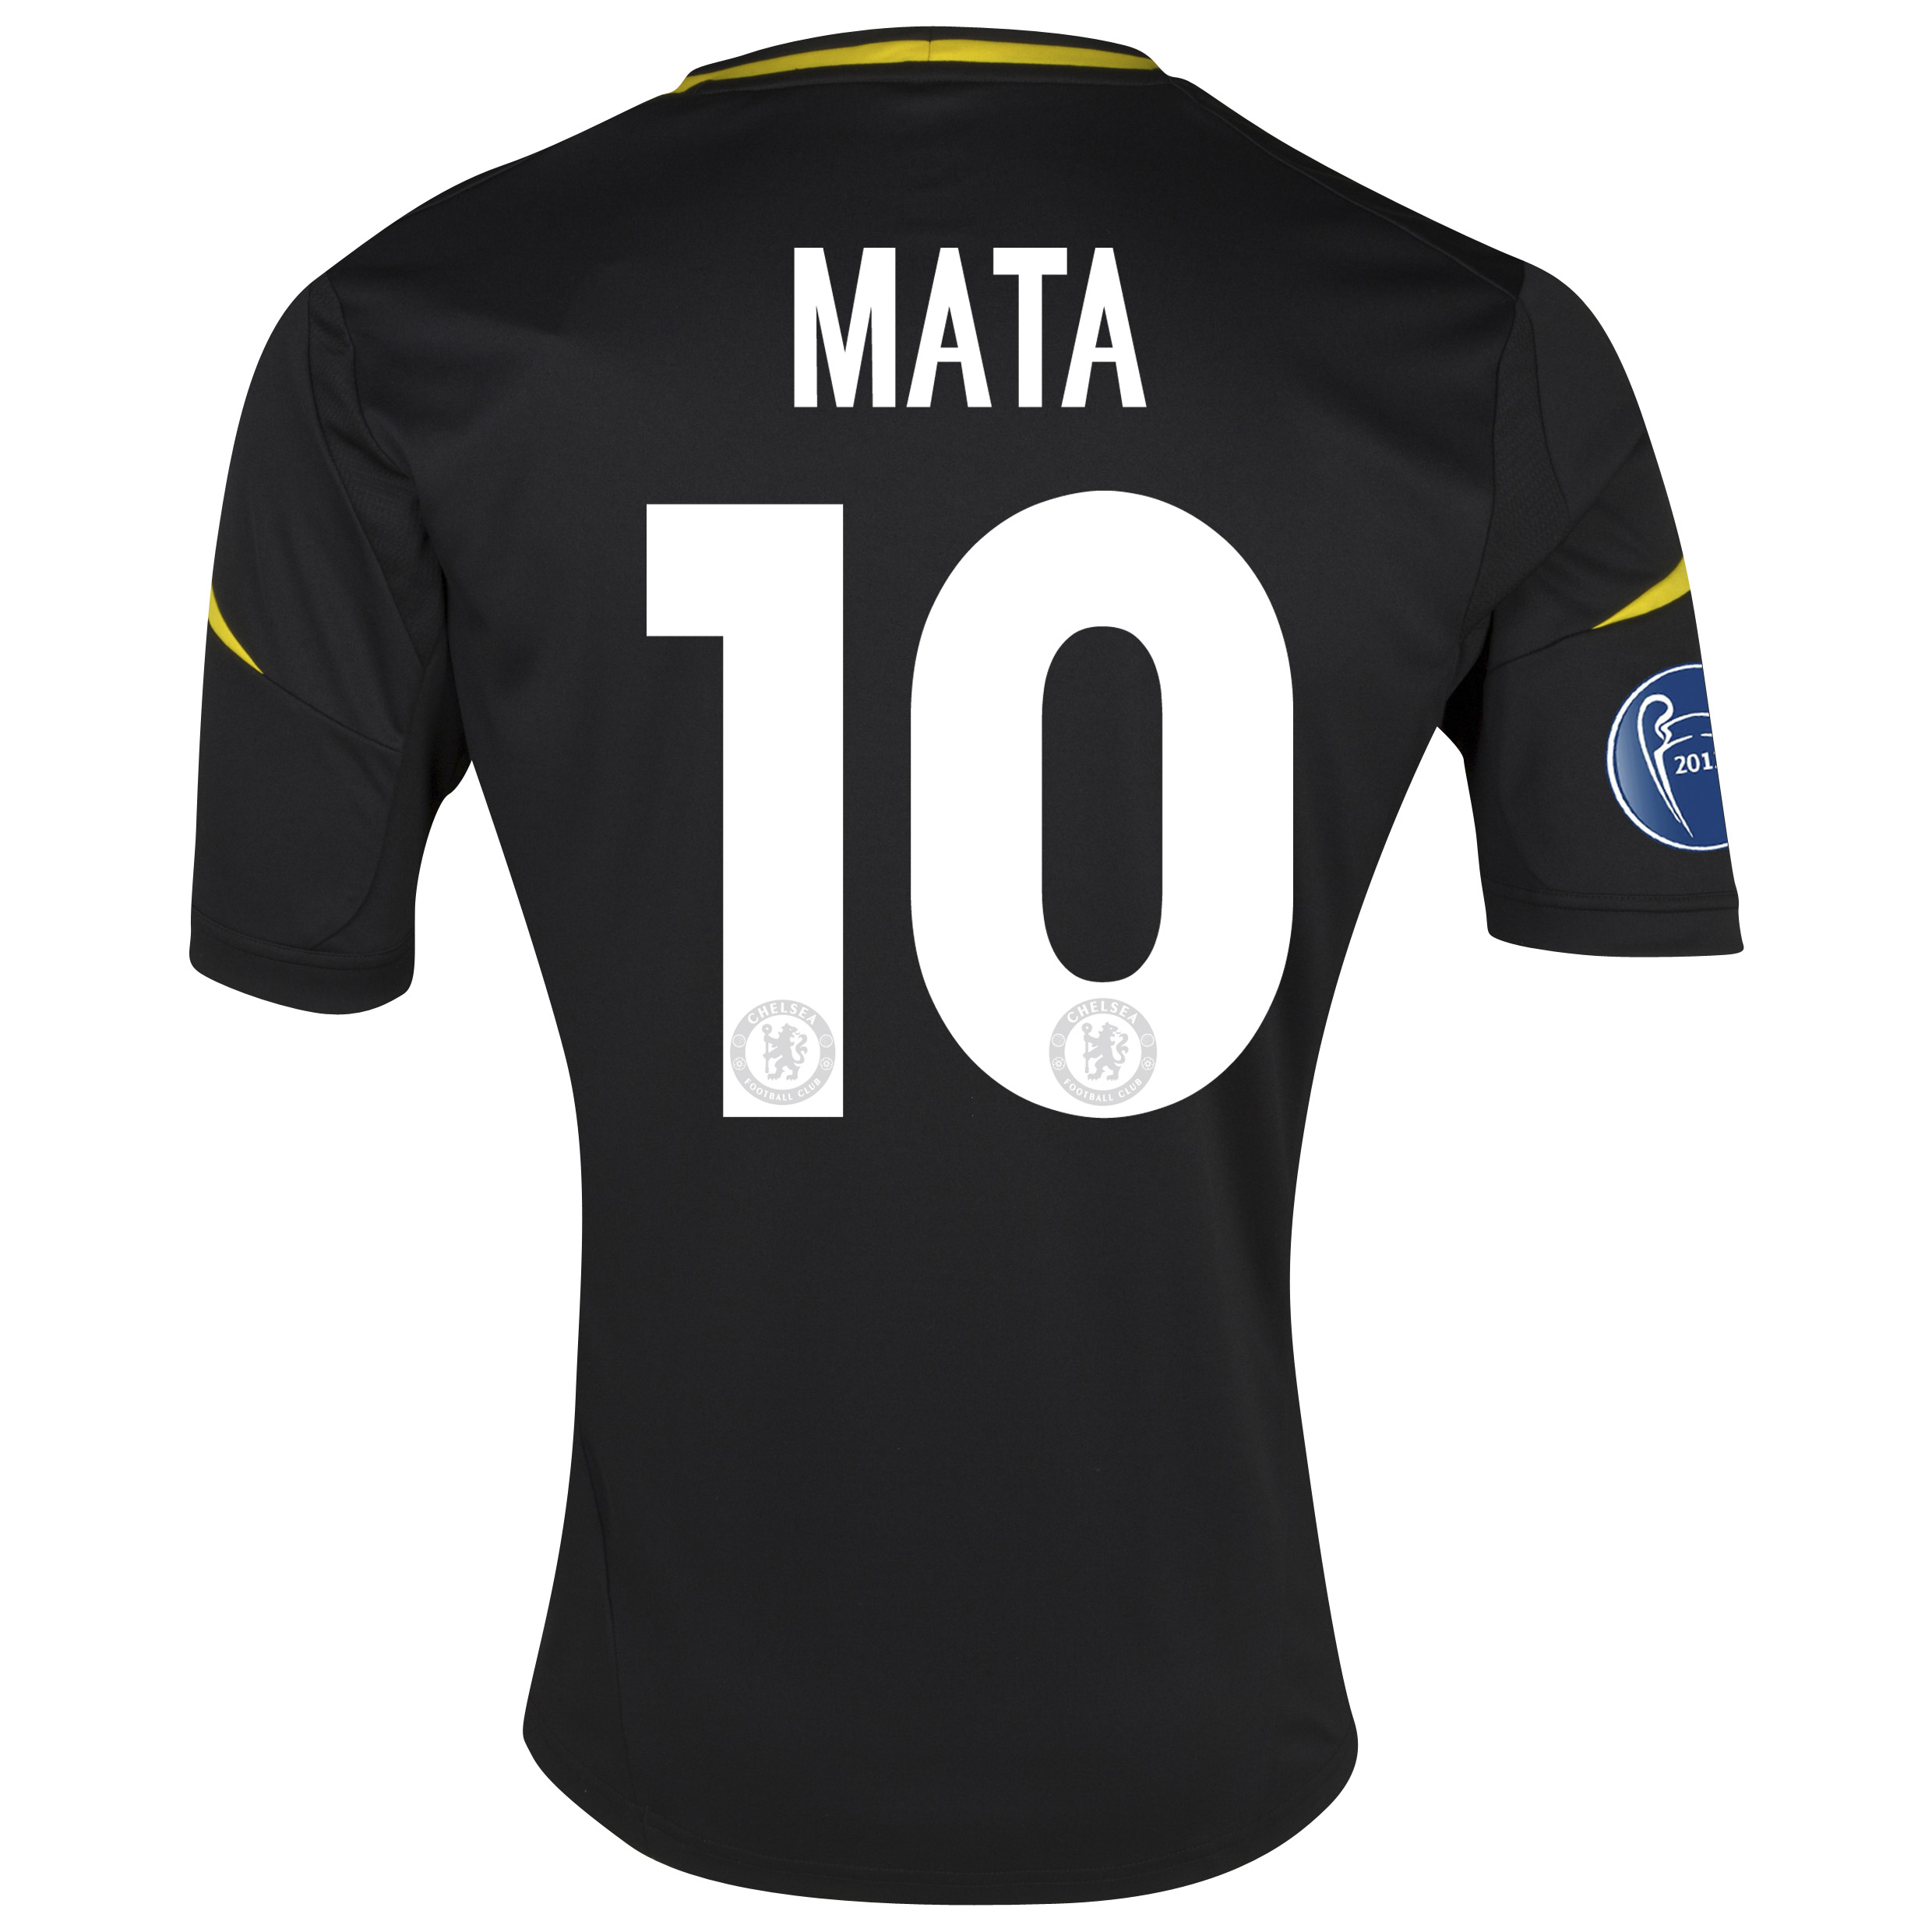 Chelsea UEFA Champions League Third Shirt 2012/13 - Youths with Mata 10 printing